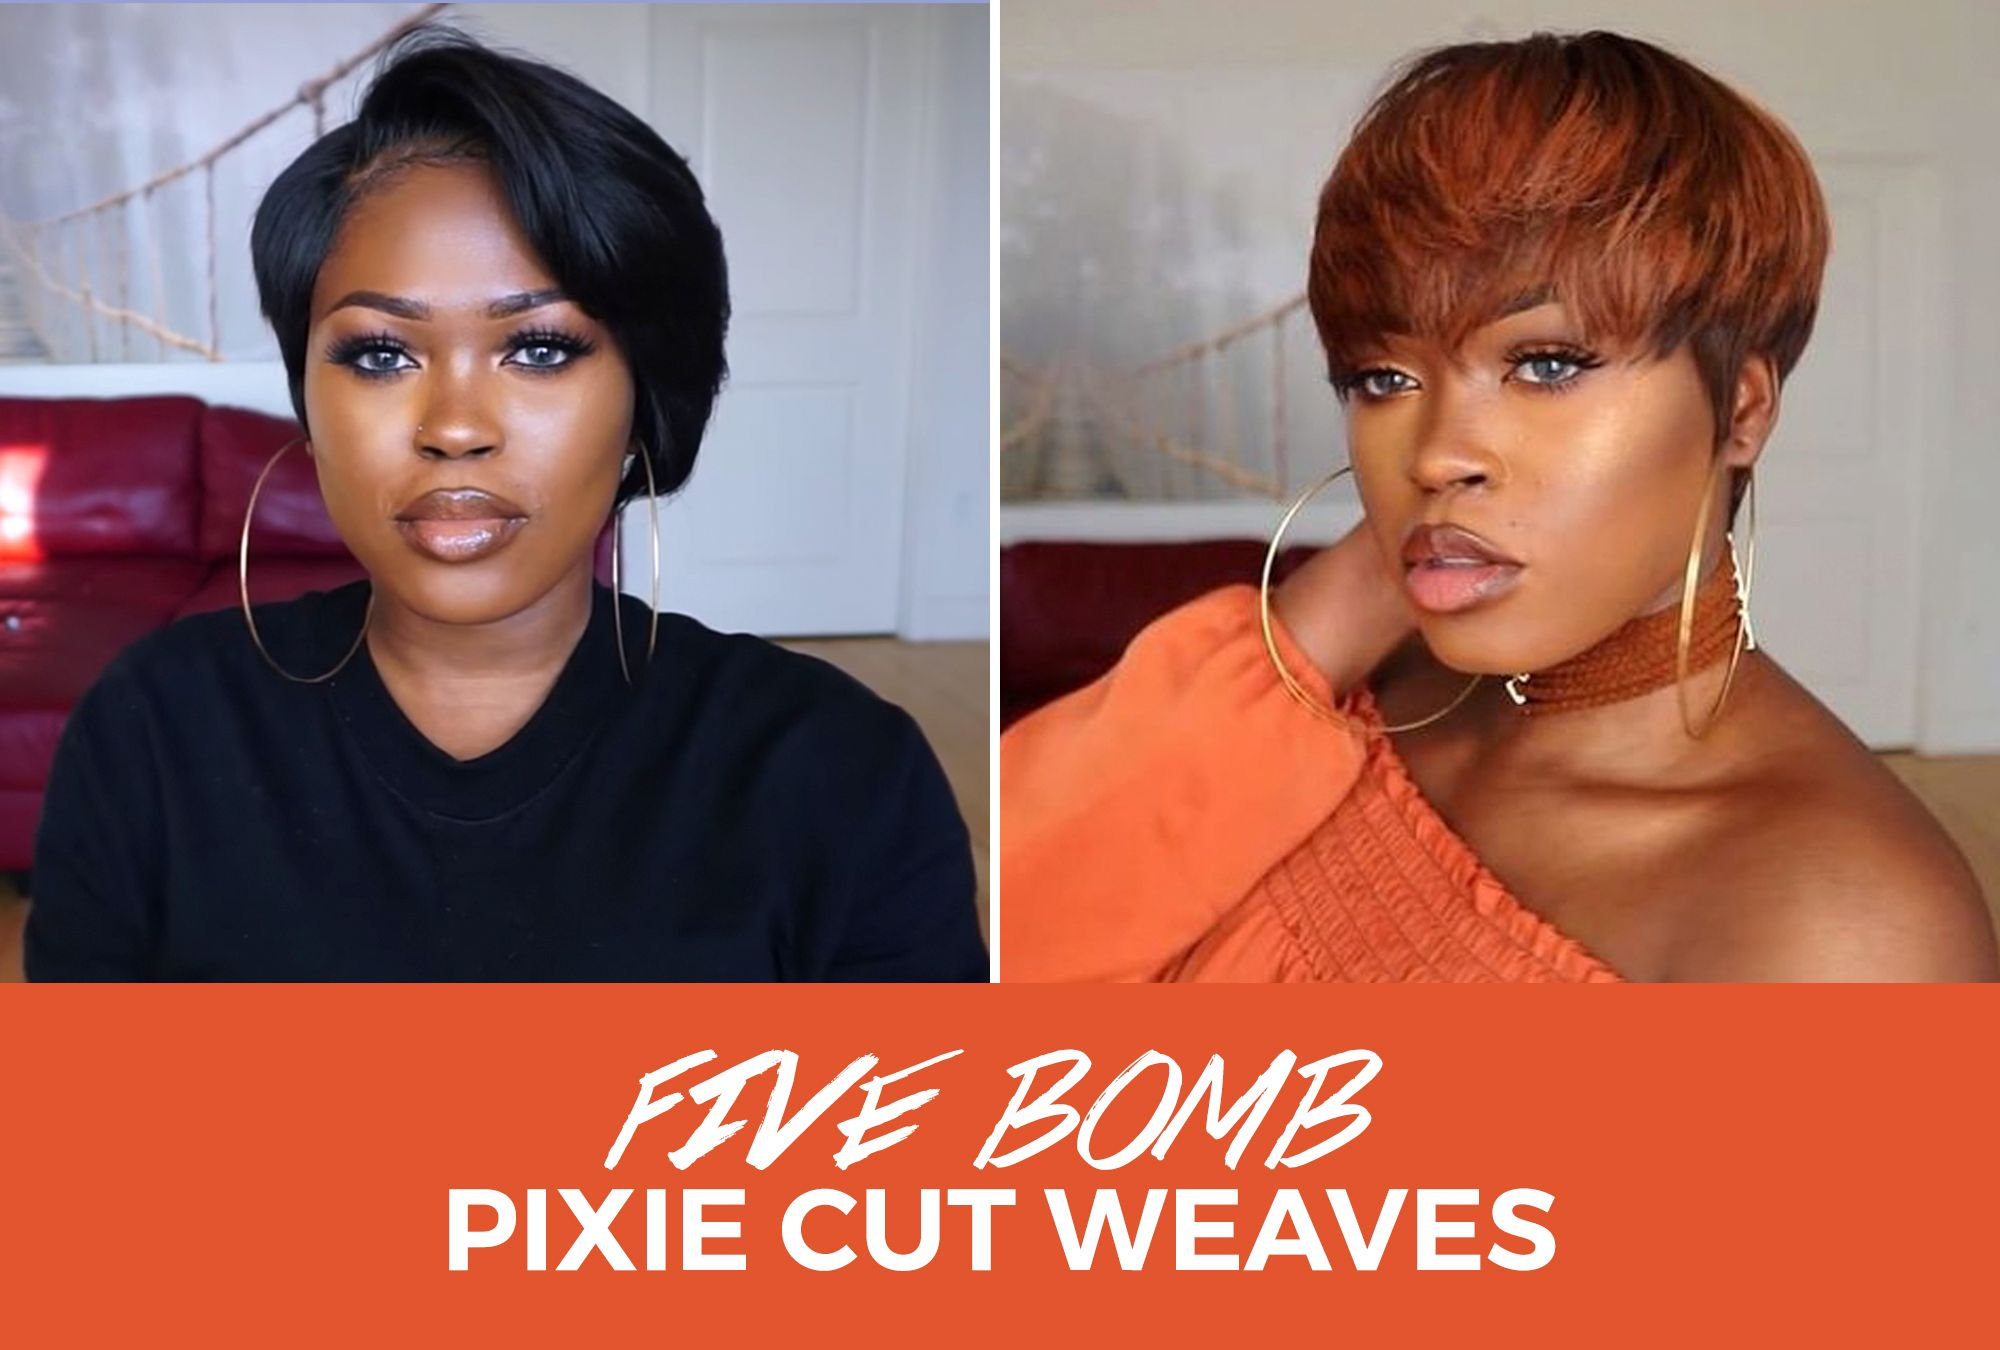 The Switch Up: 5 Bomb Pixie Cut Weaves